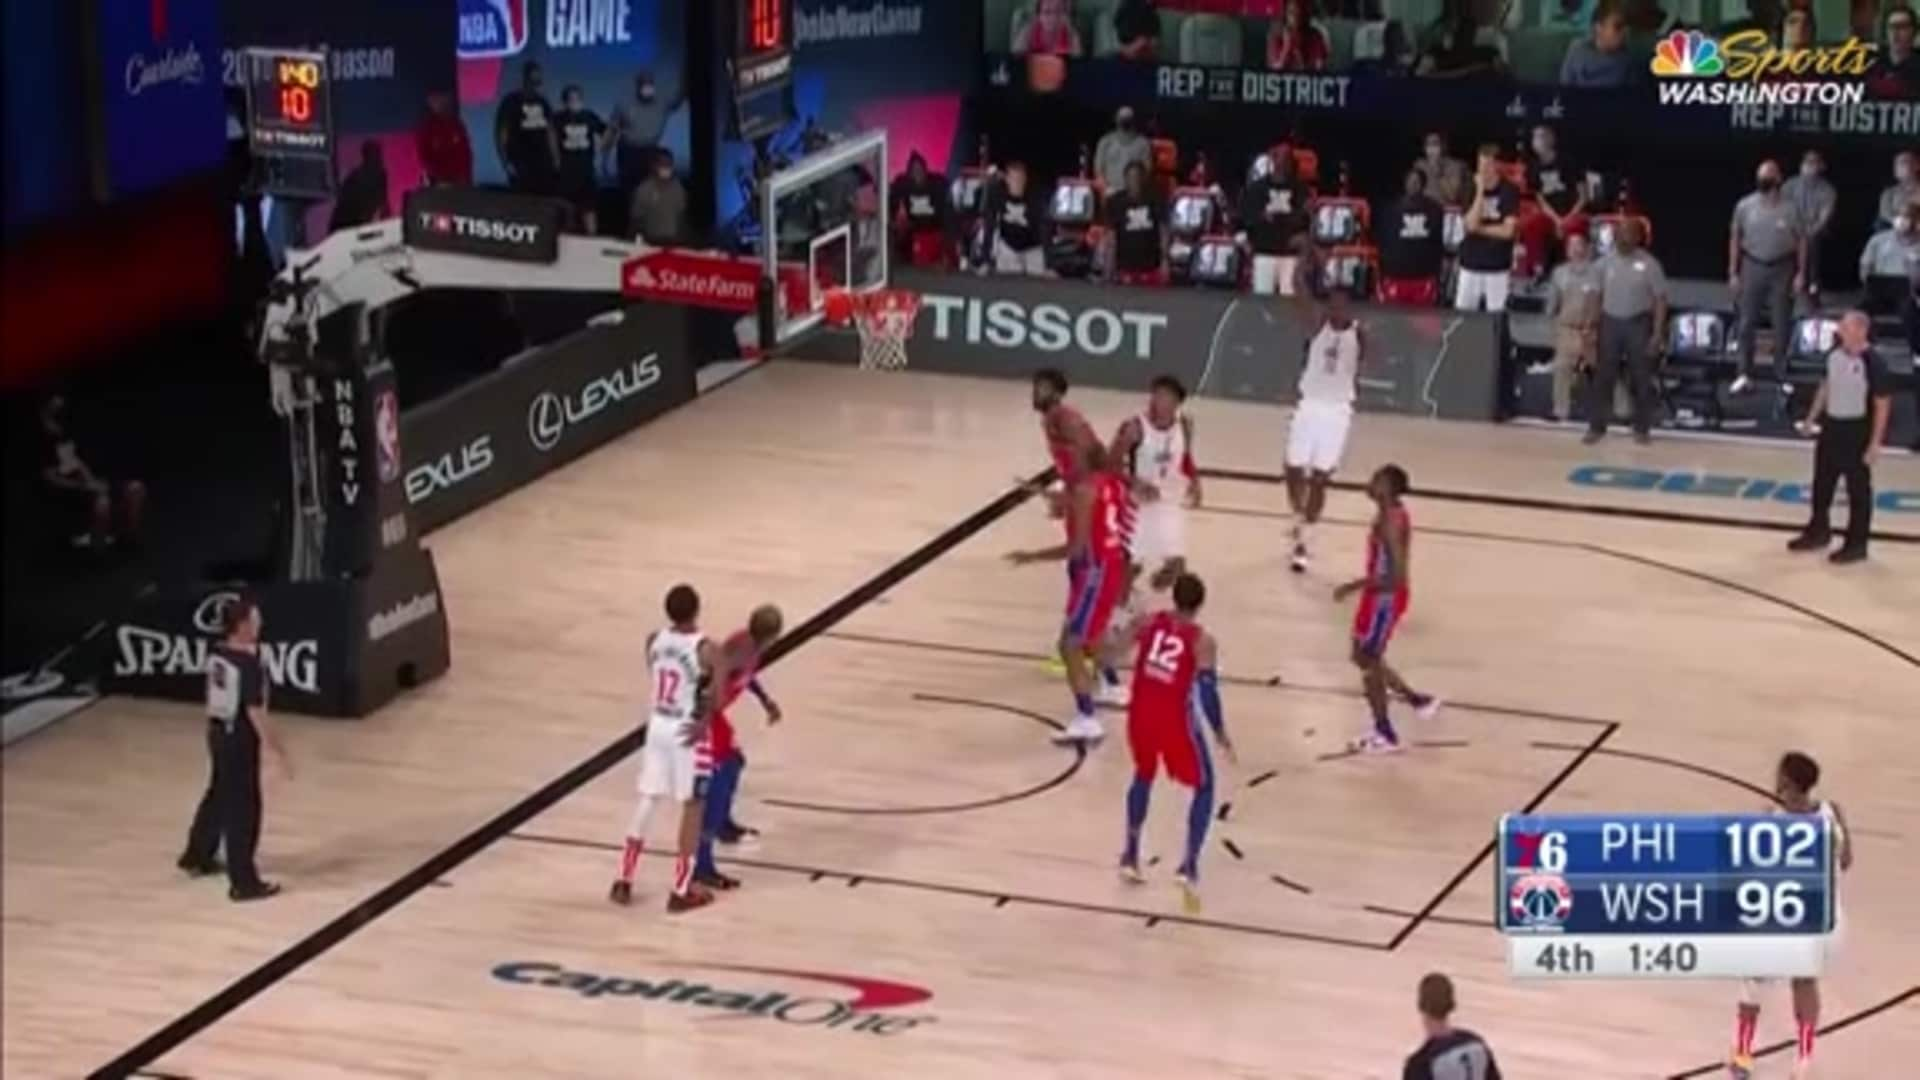 Highlights: Thomas Bryant vs. Sixers - 08/05/20